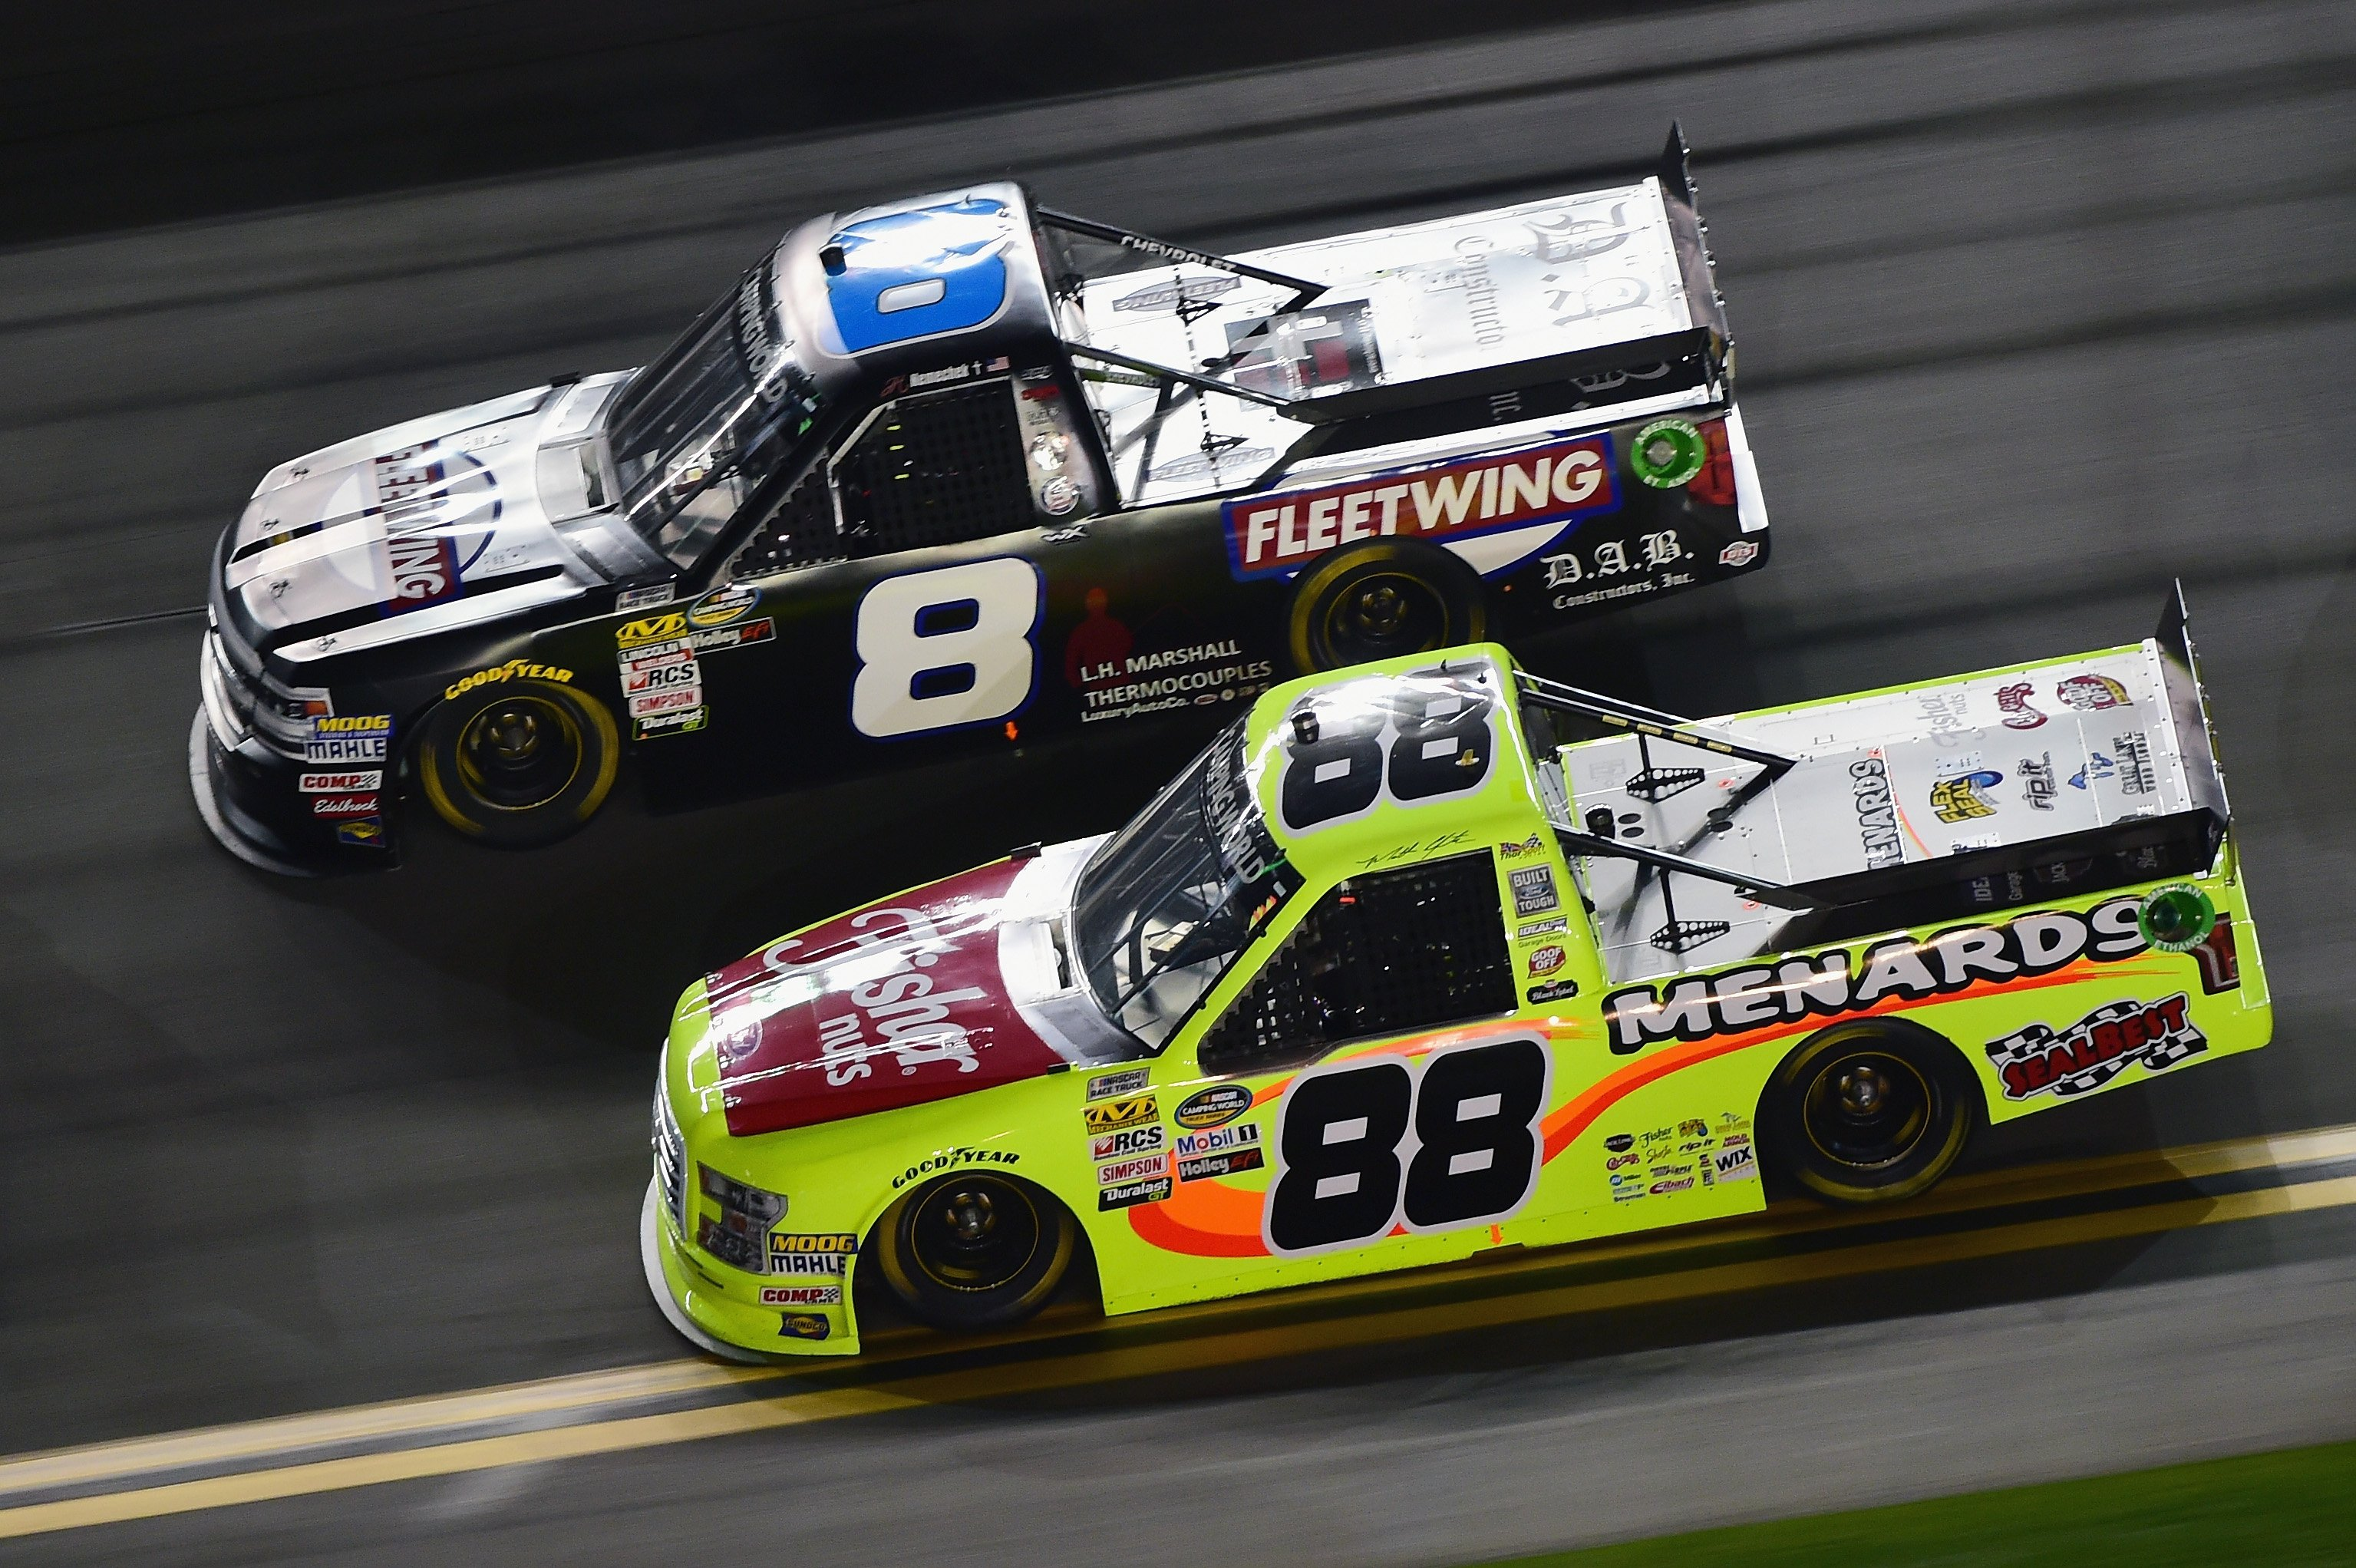 Matt Crafton and John Hunter Nemechek at Daytona International Speedway